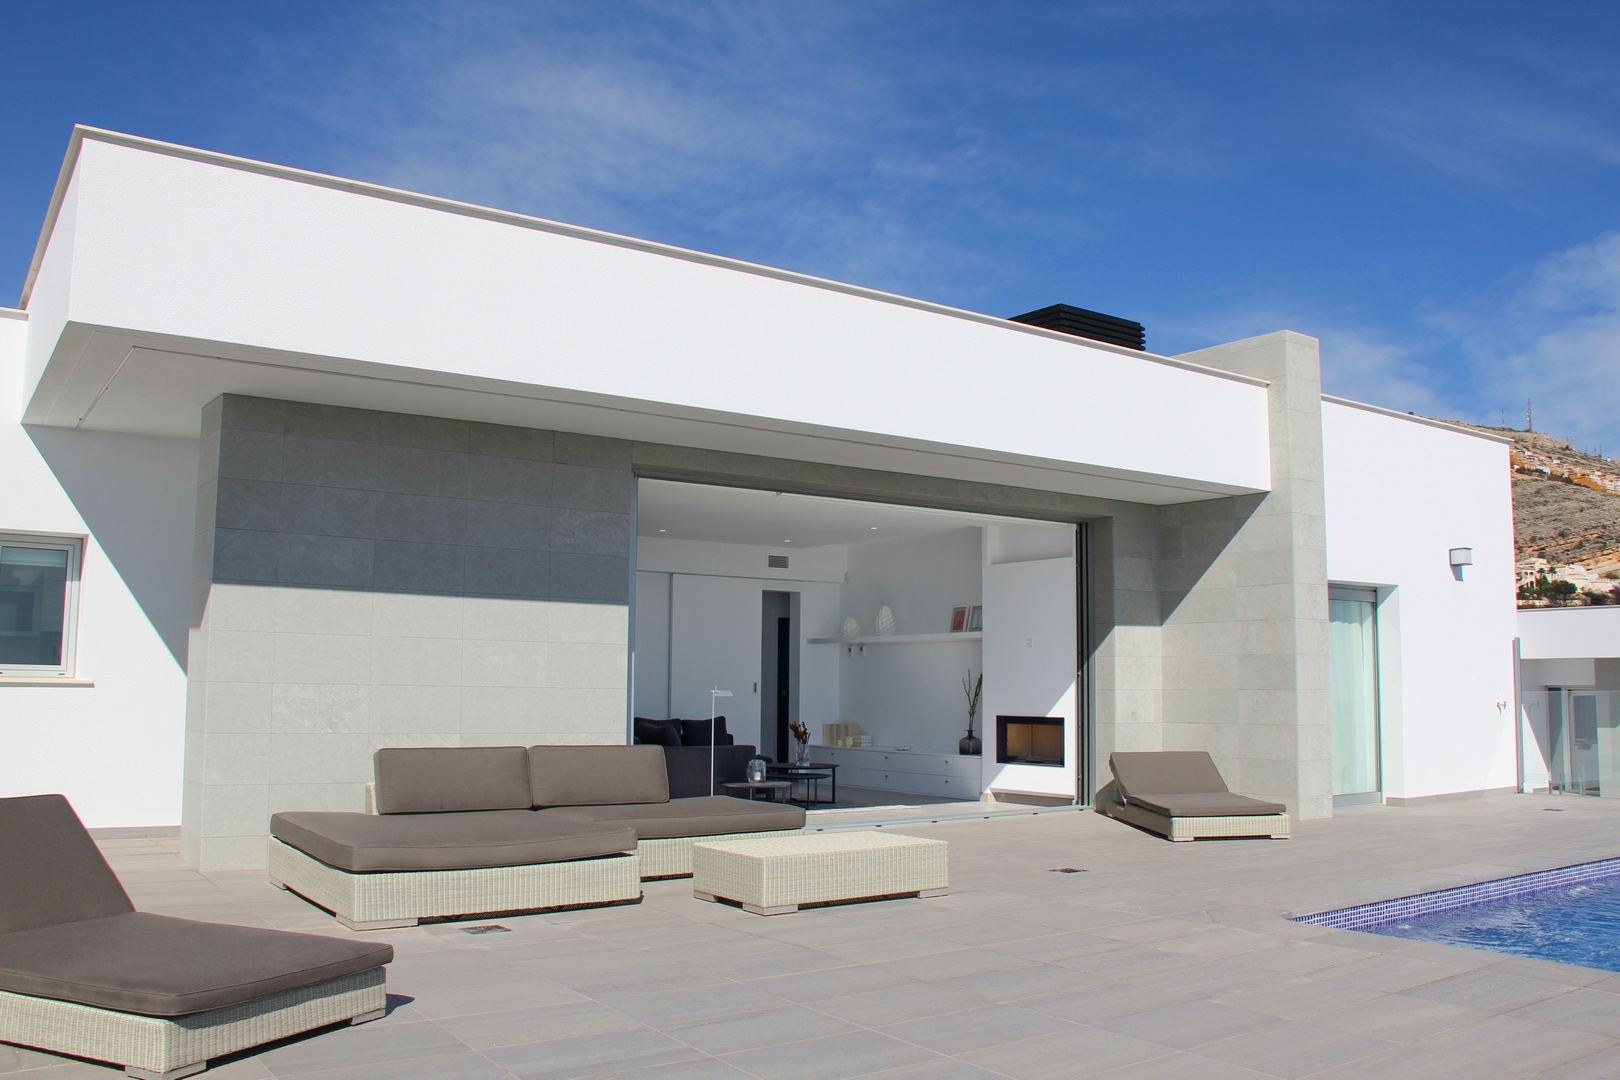 3 bedroom villa For Sale in Cumbre Del Sol - Main Image